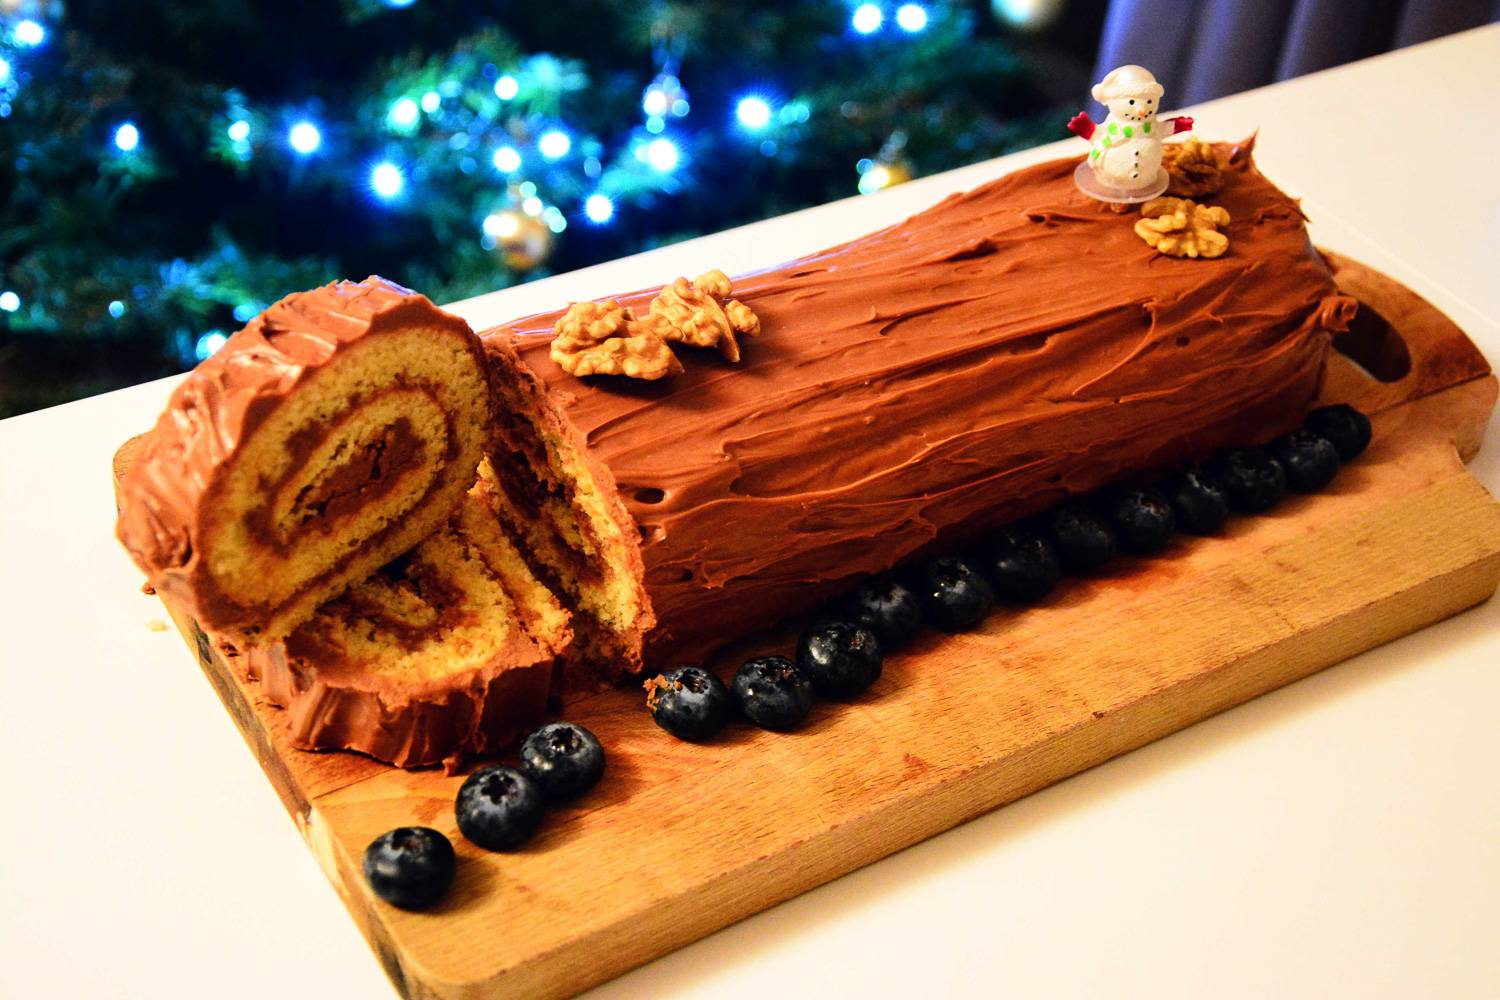 Image of a Yule log cake topped with a snowman figurine for the holidays.